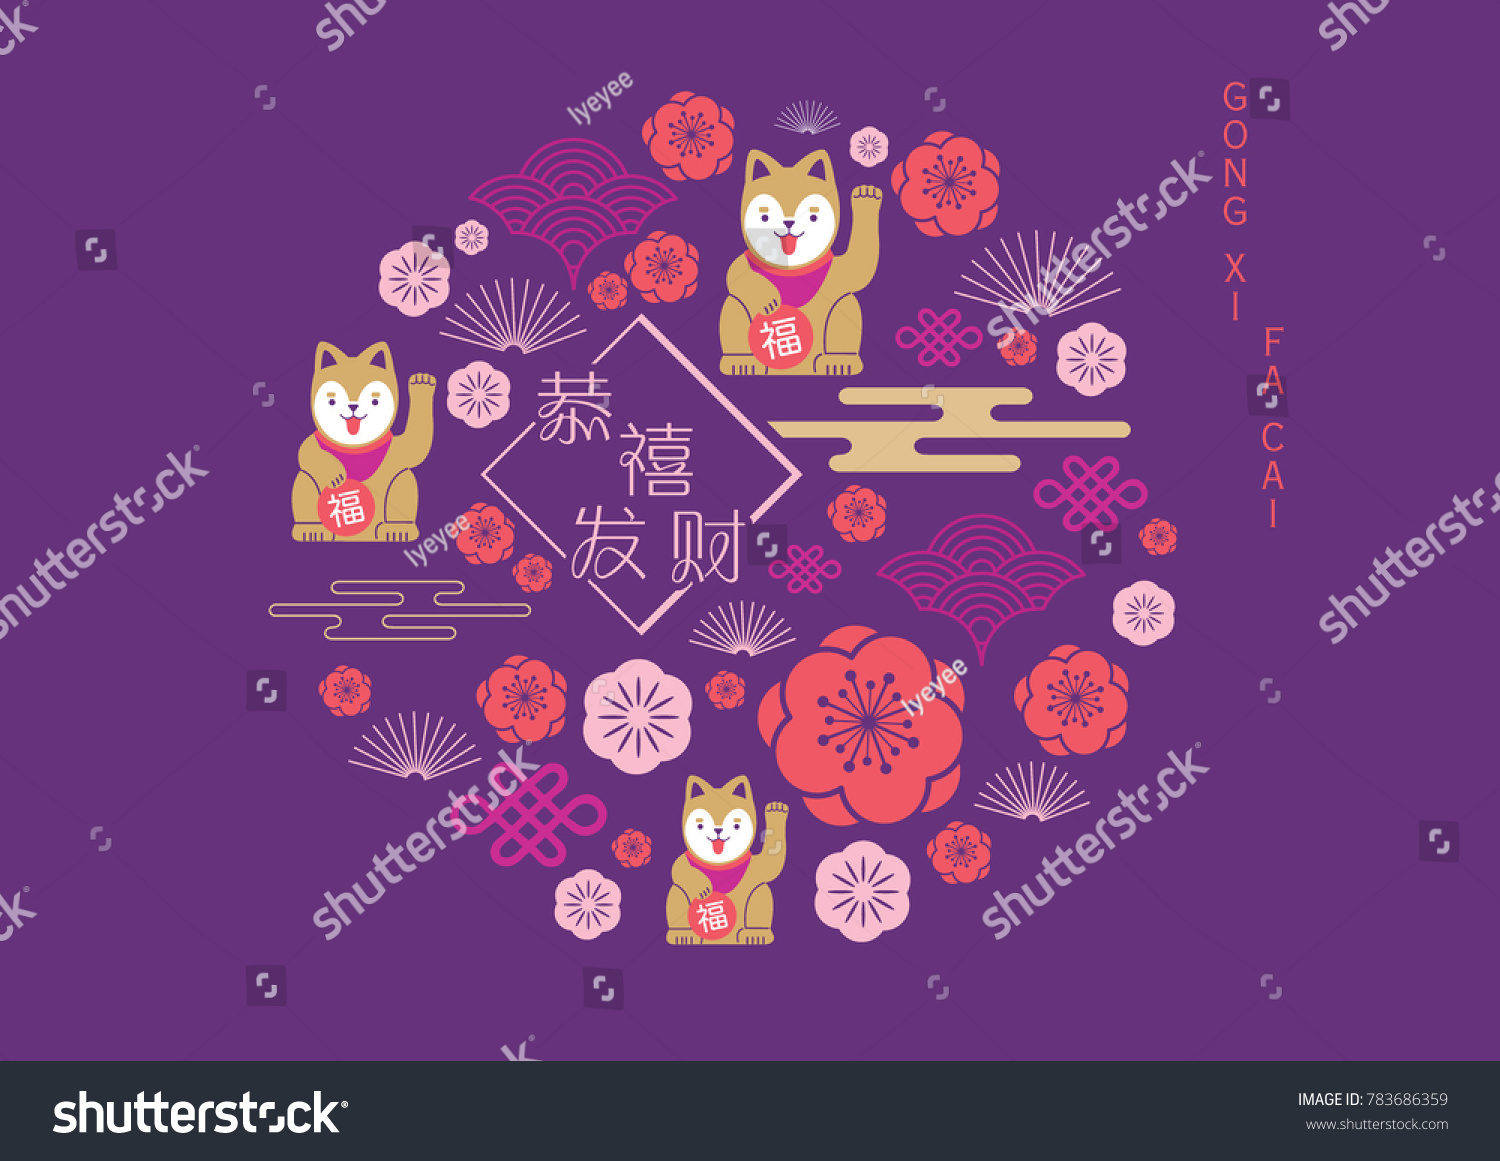 Chinese new year dog elements greetings stock vector 783686359 chinese new year of the dog elements greetings template vectorillustration with chinese words m4hsunfo